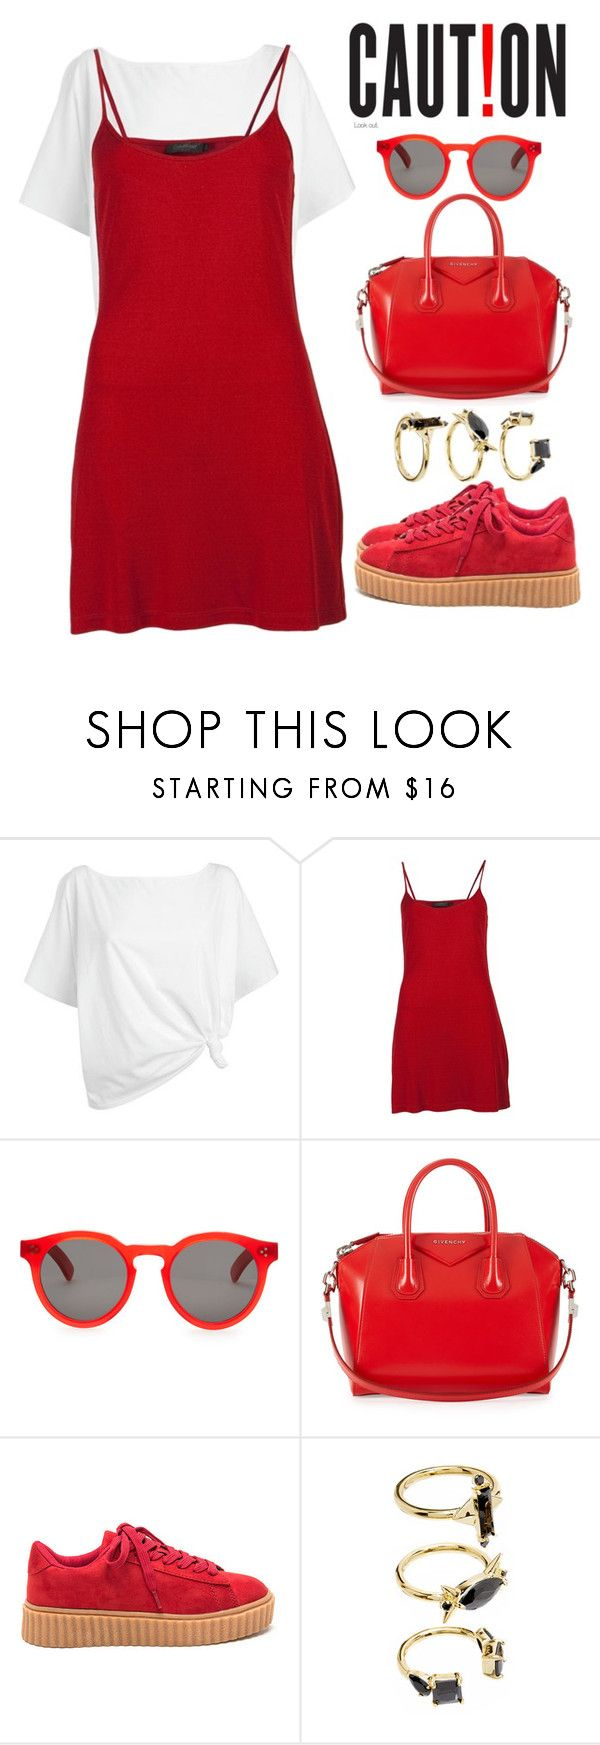 """""""My Creepers"""" by sally92 on Polyvore featuring moda, Red Herring, Calvin Klein, Illesteva, Givenchy e Noir Jewelry"""